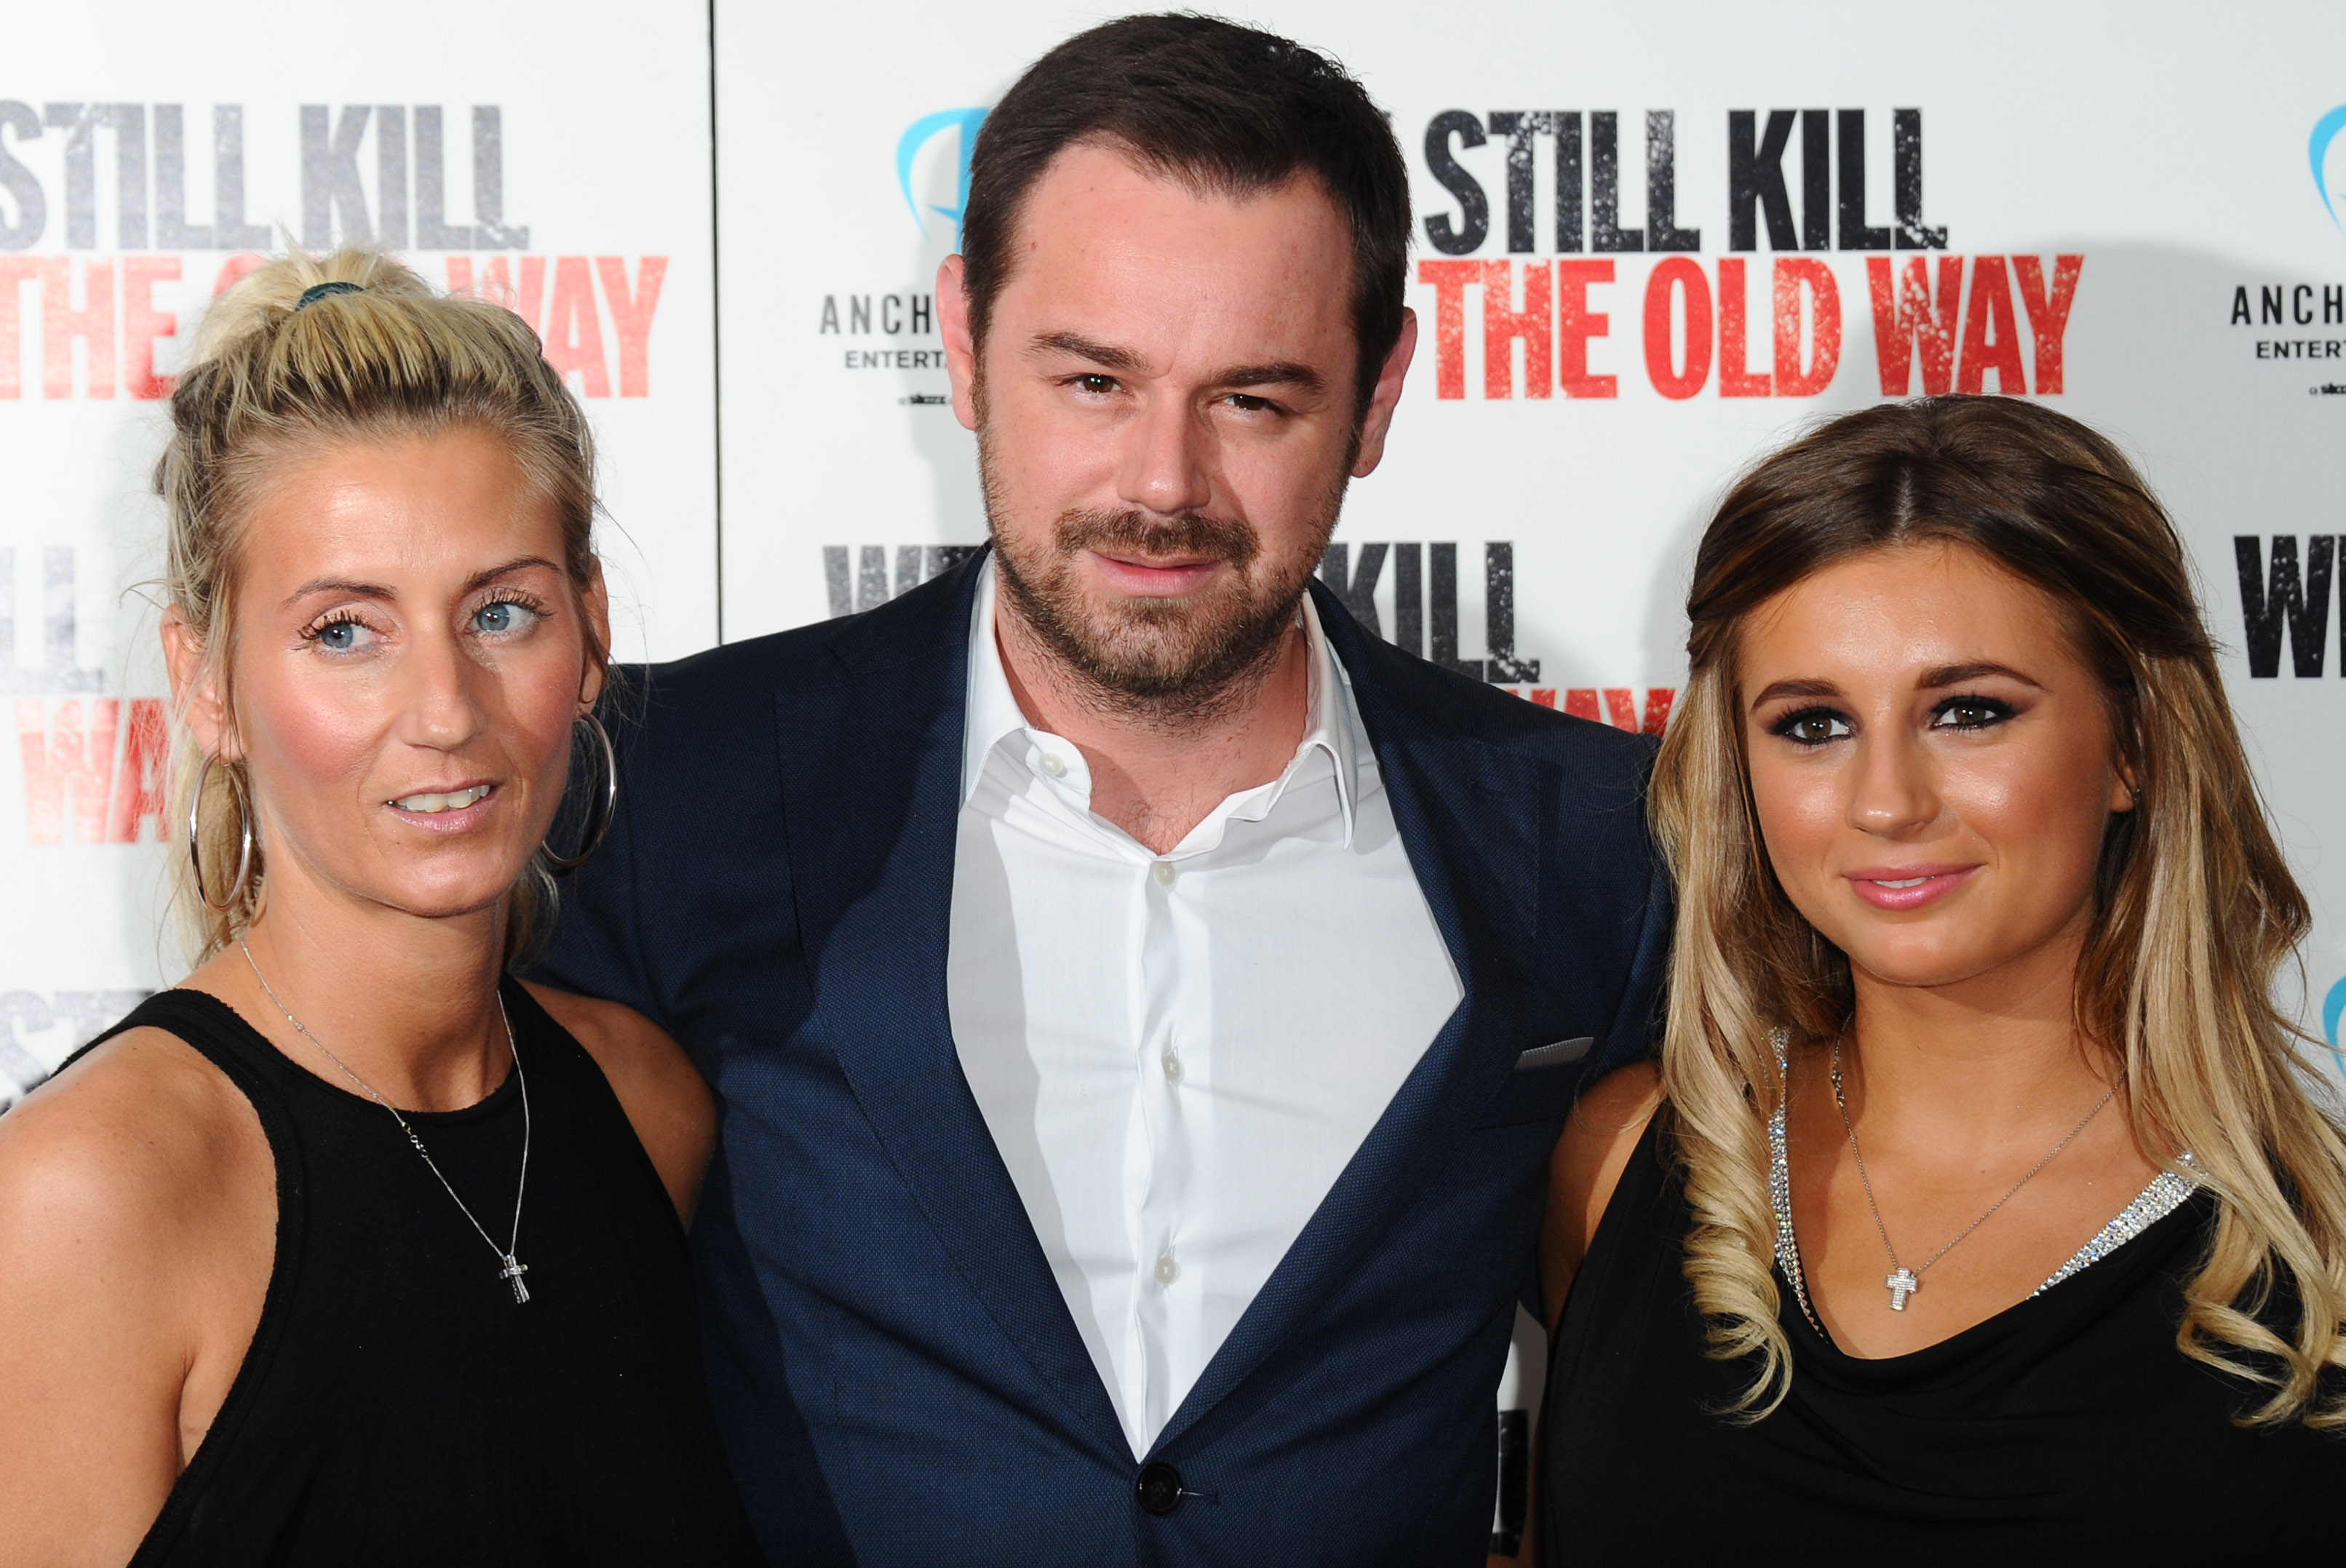 Dani Dyer says she wants to 'smack Mark Wright's pals in the mouth' as Danny calls TOWIE star out on Twitter